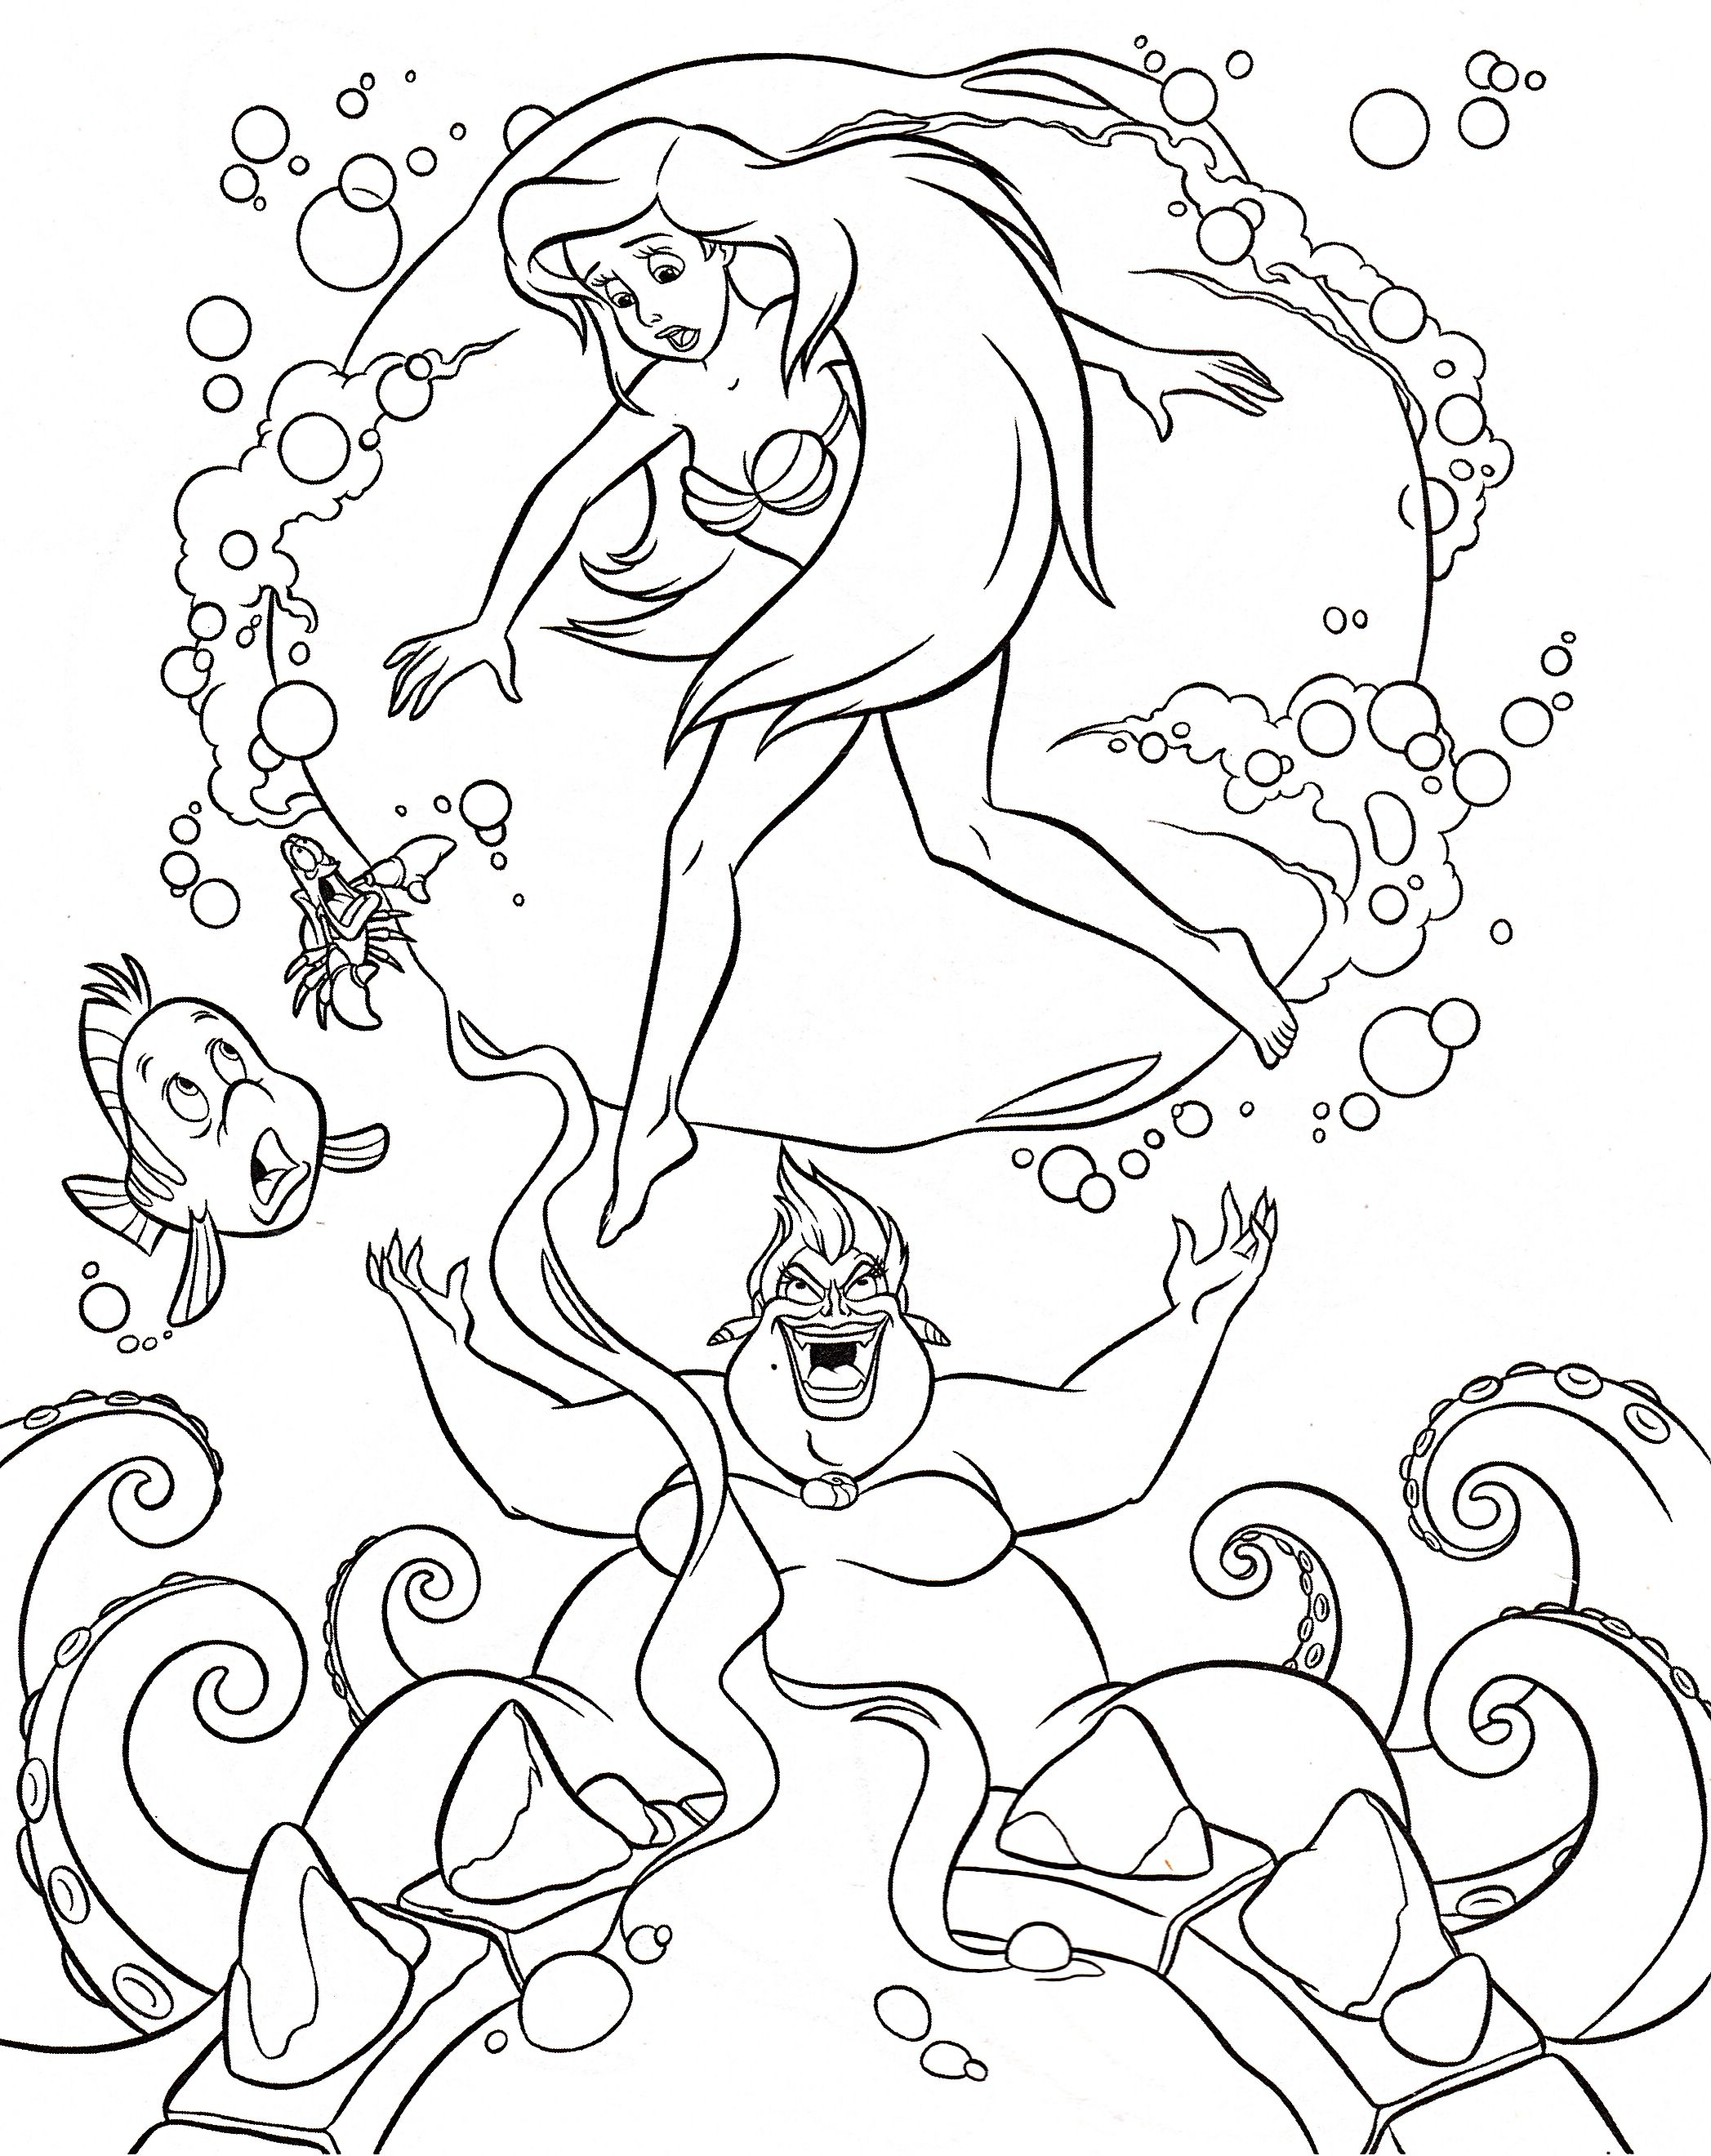 Walt Disney Coloring Pages - Flounder, Sebastian, Princess Ariel ...